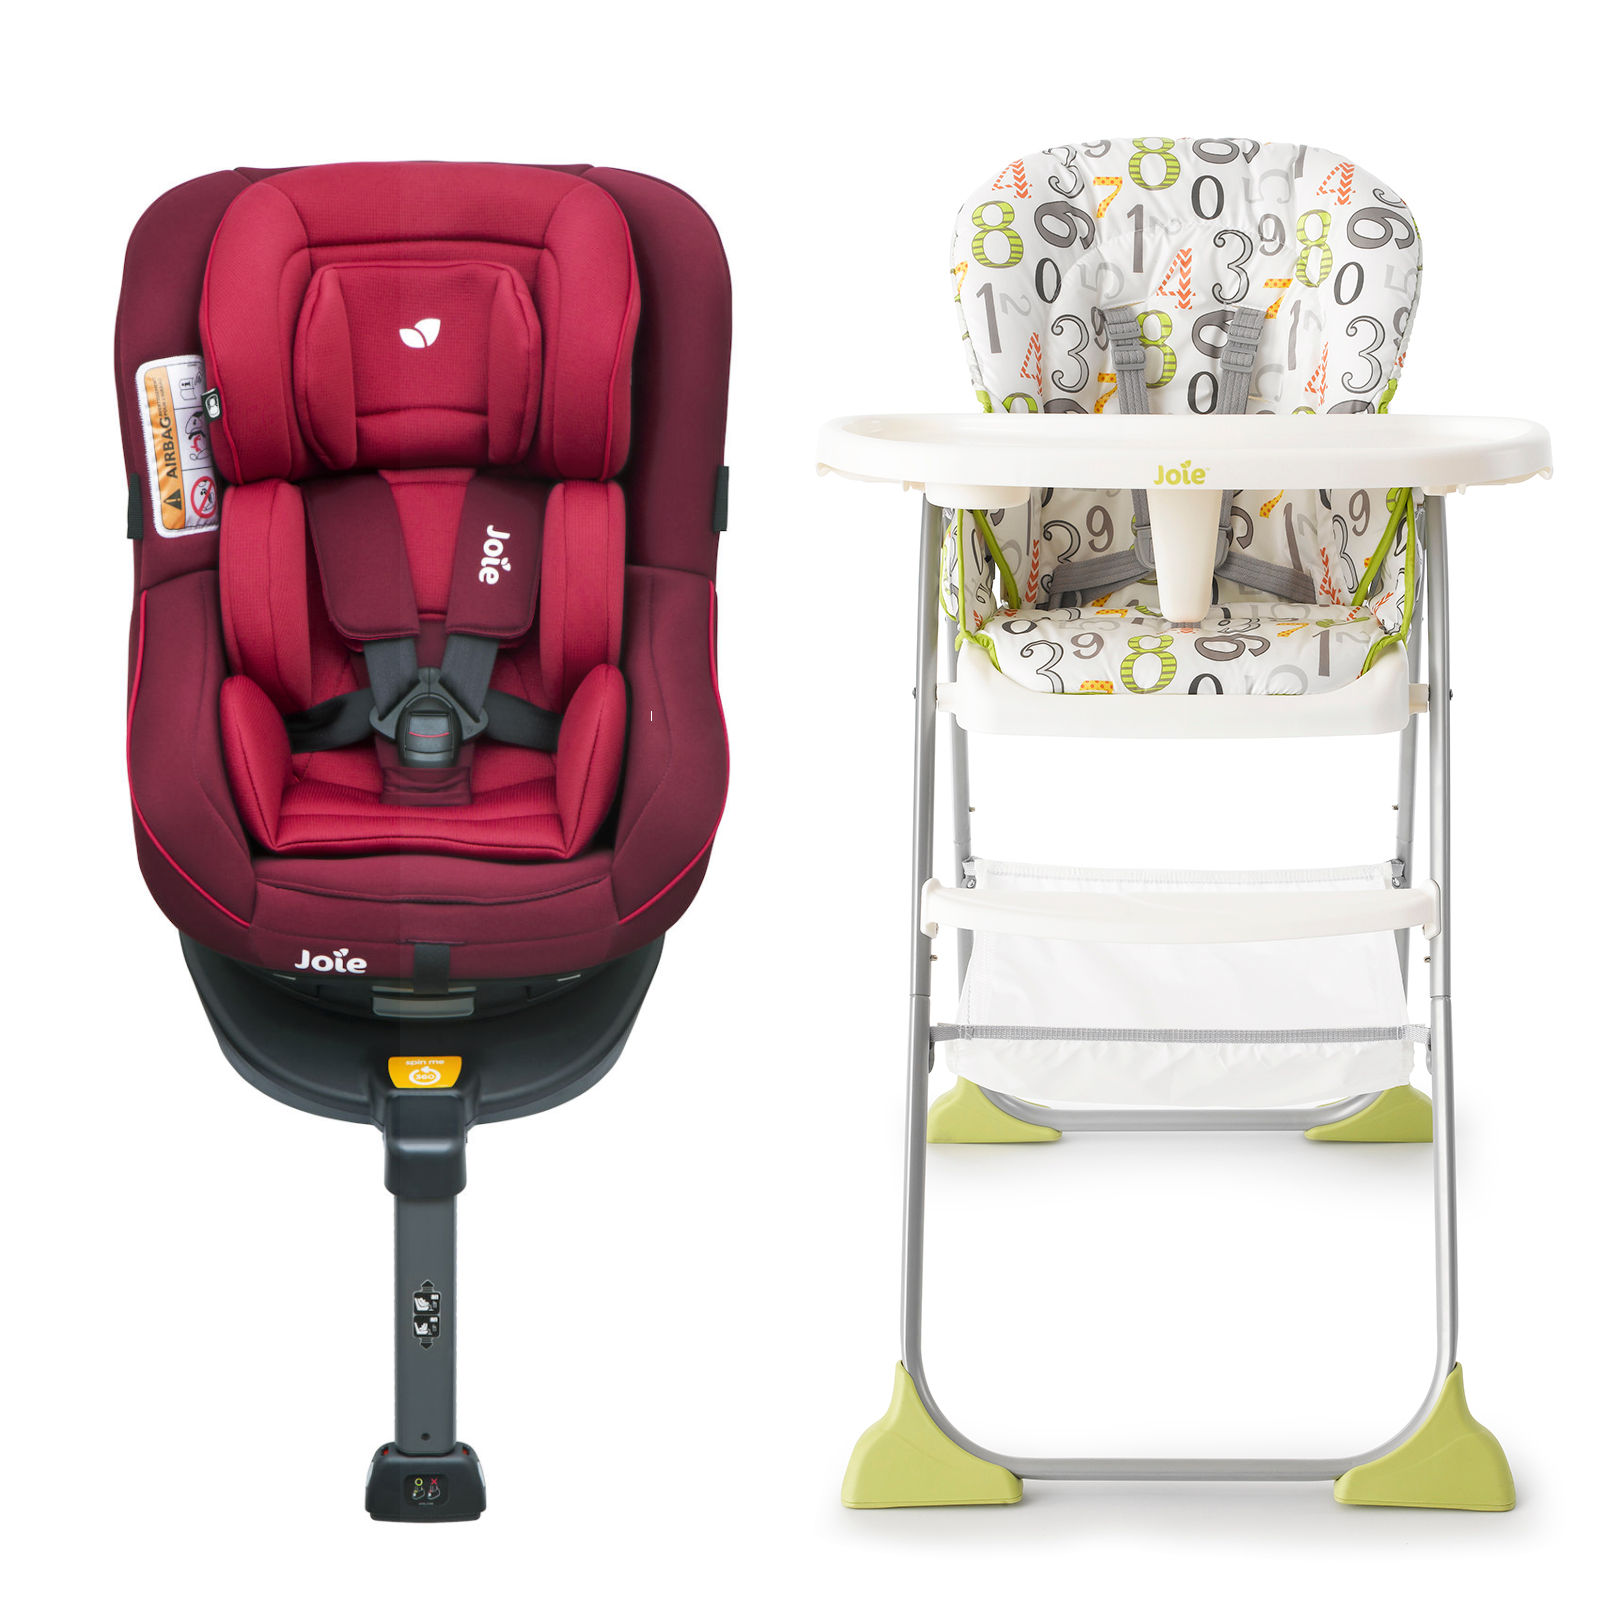 Joie 360 Isofix Installation Joie Spin 360 Group 1 Isofix Car Seat With Mimzy Snacker Highchair Bundle Merlot 123